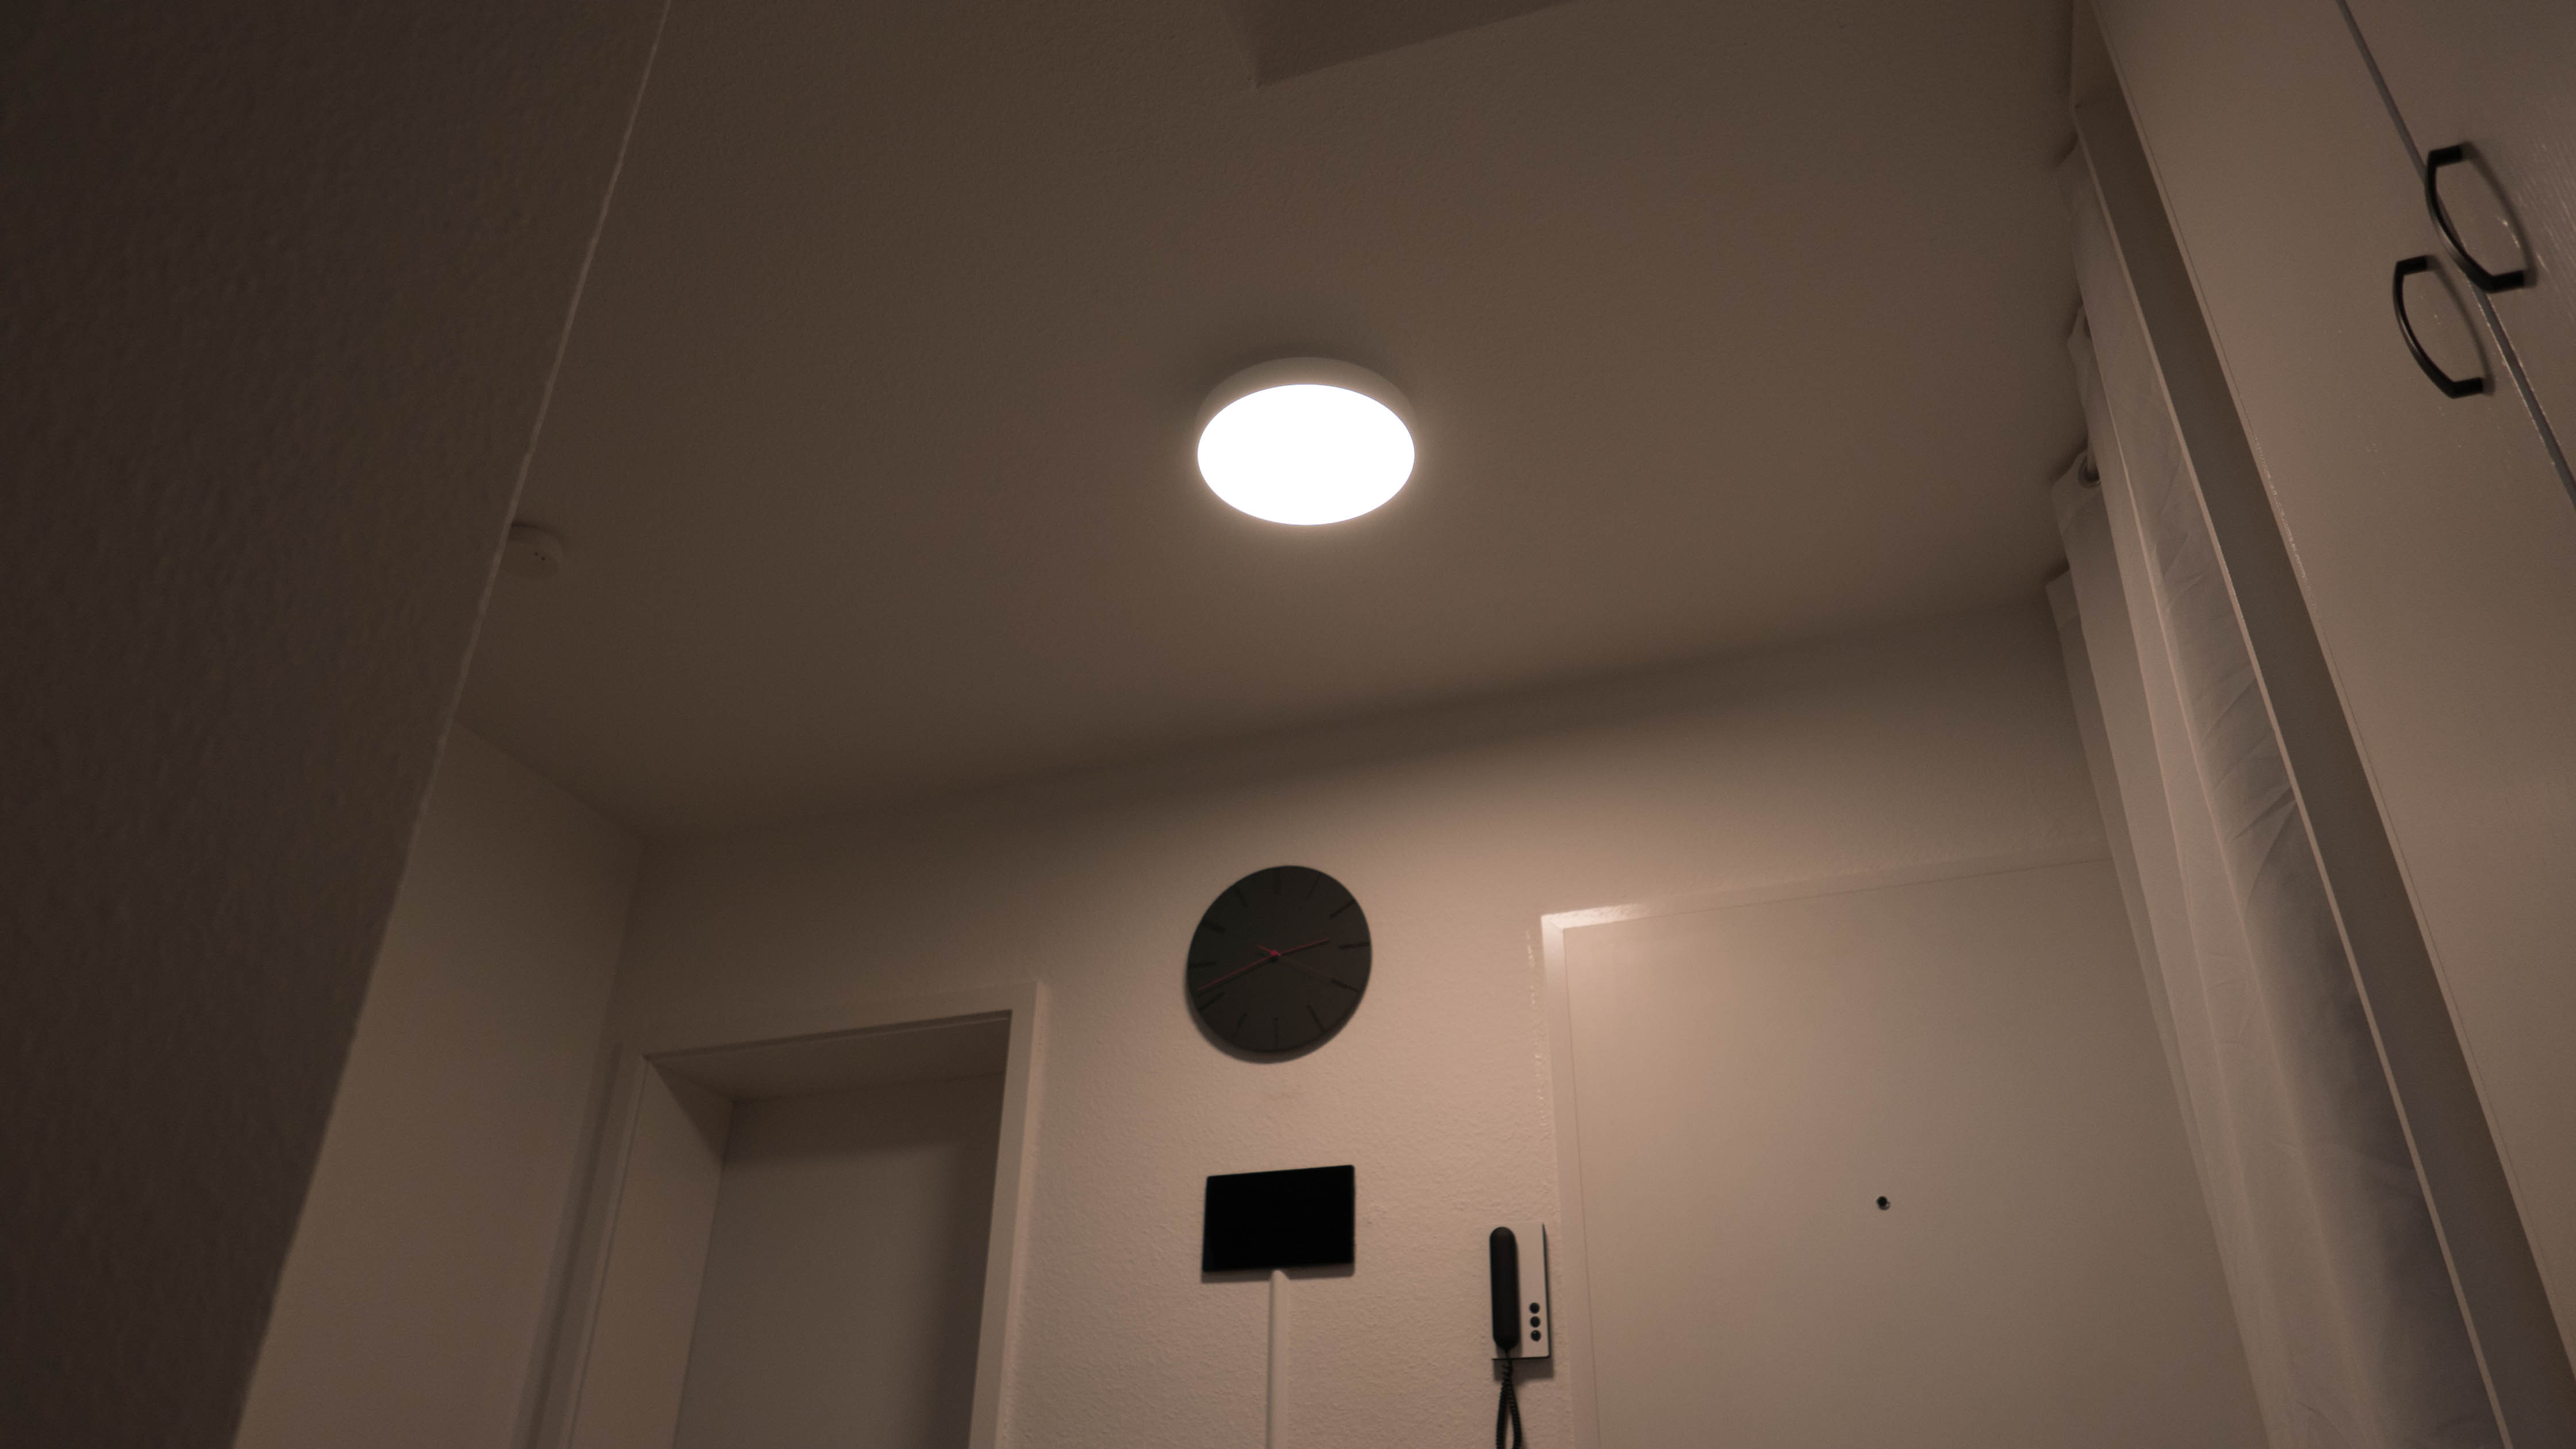 Xiaomi Yeelight LED Ceiling Light Farbtemperatur 6